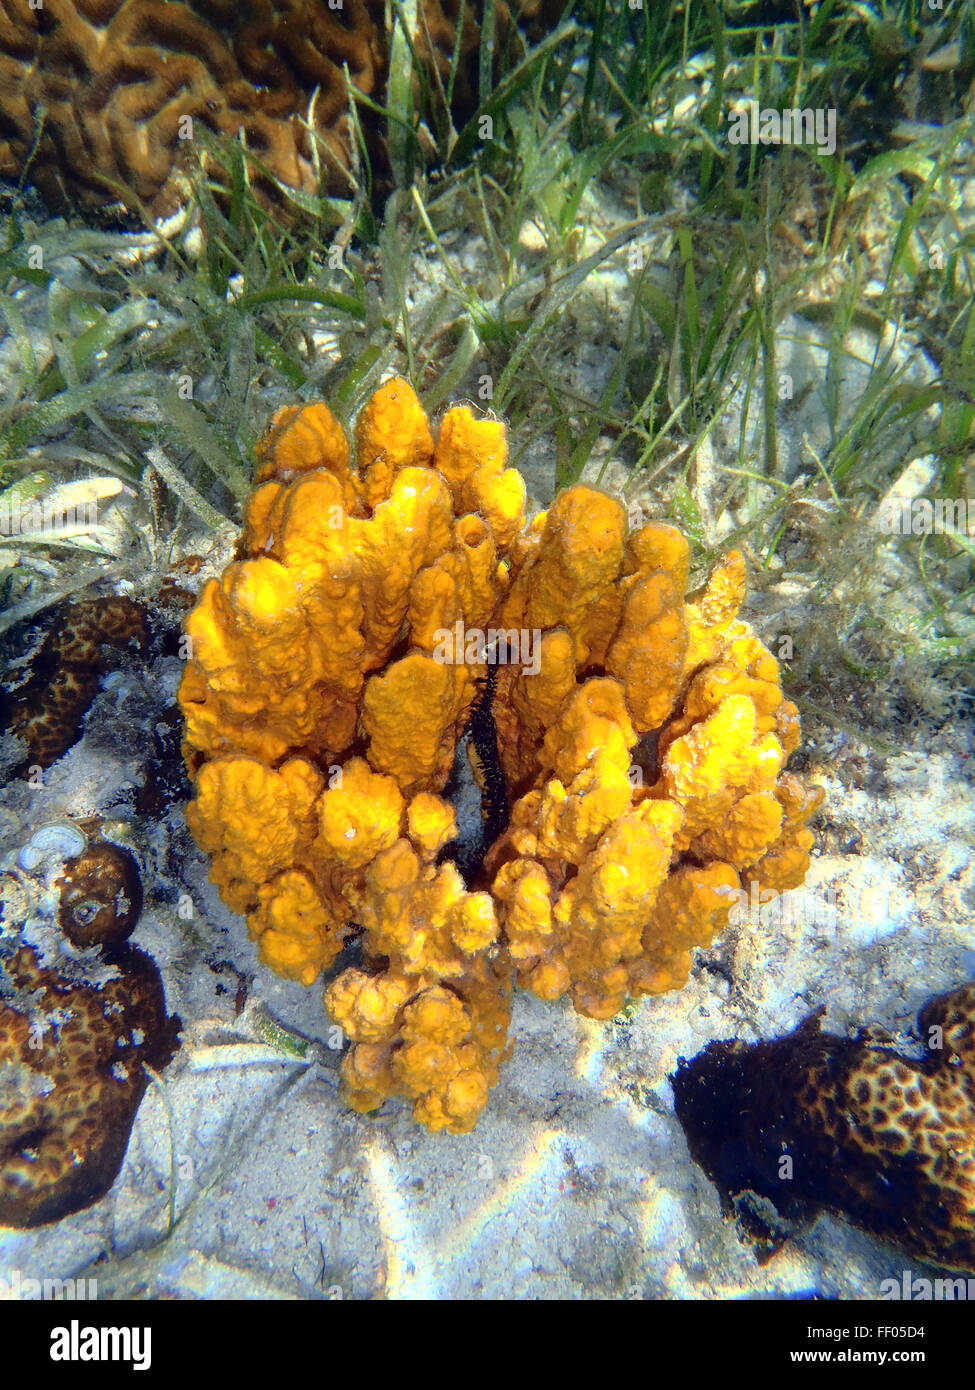 coral reef with great yellow sea sponge - Stock Image